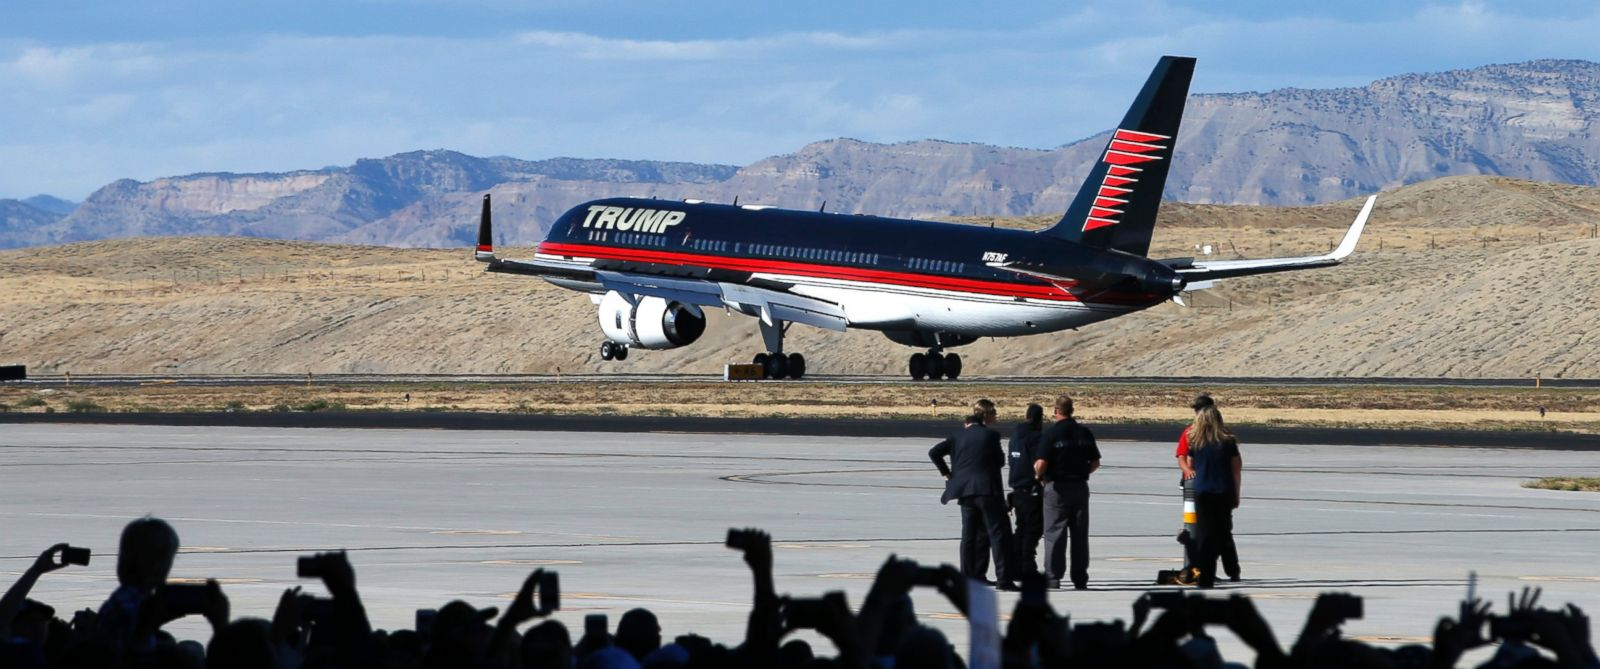 donald trump tweets to 39 cancel order 39 for new air force. Black Bedroom Furniture Sets. Home Design Ideas